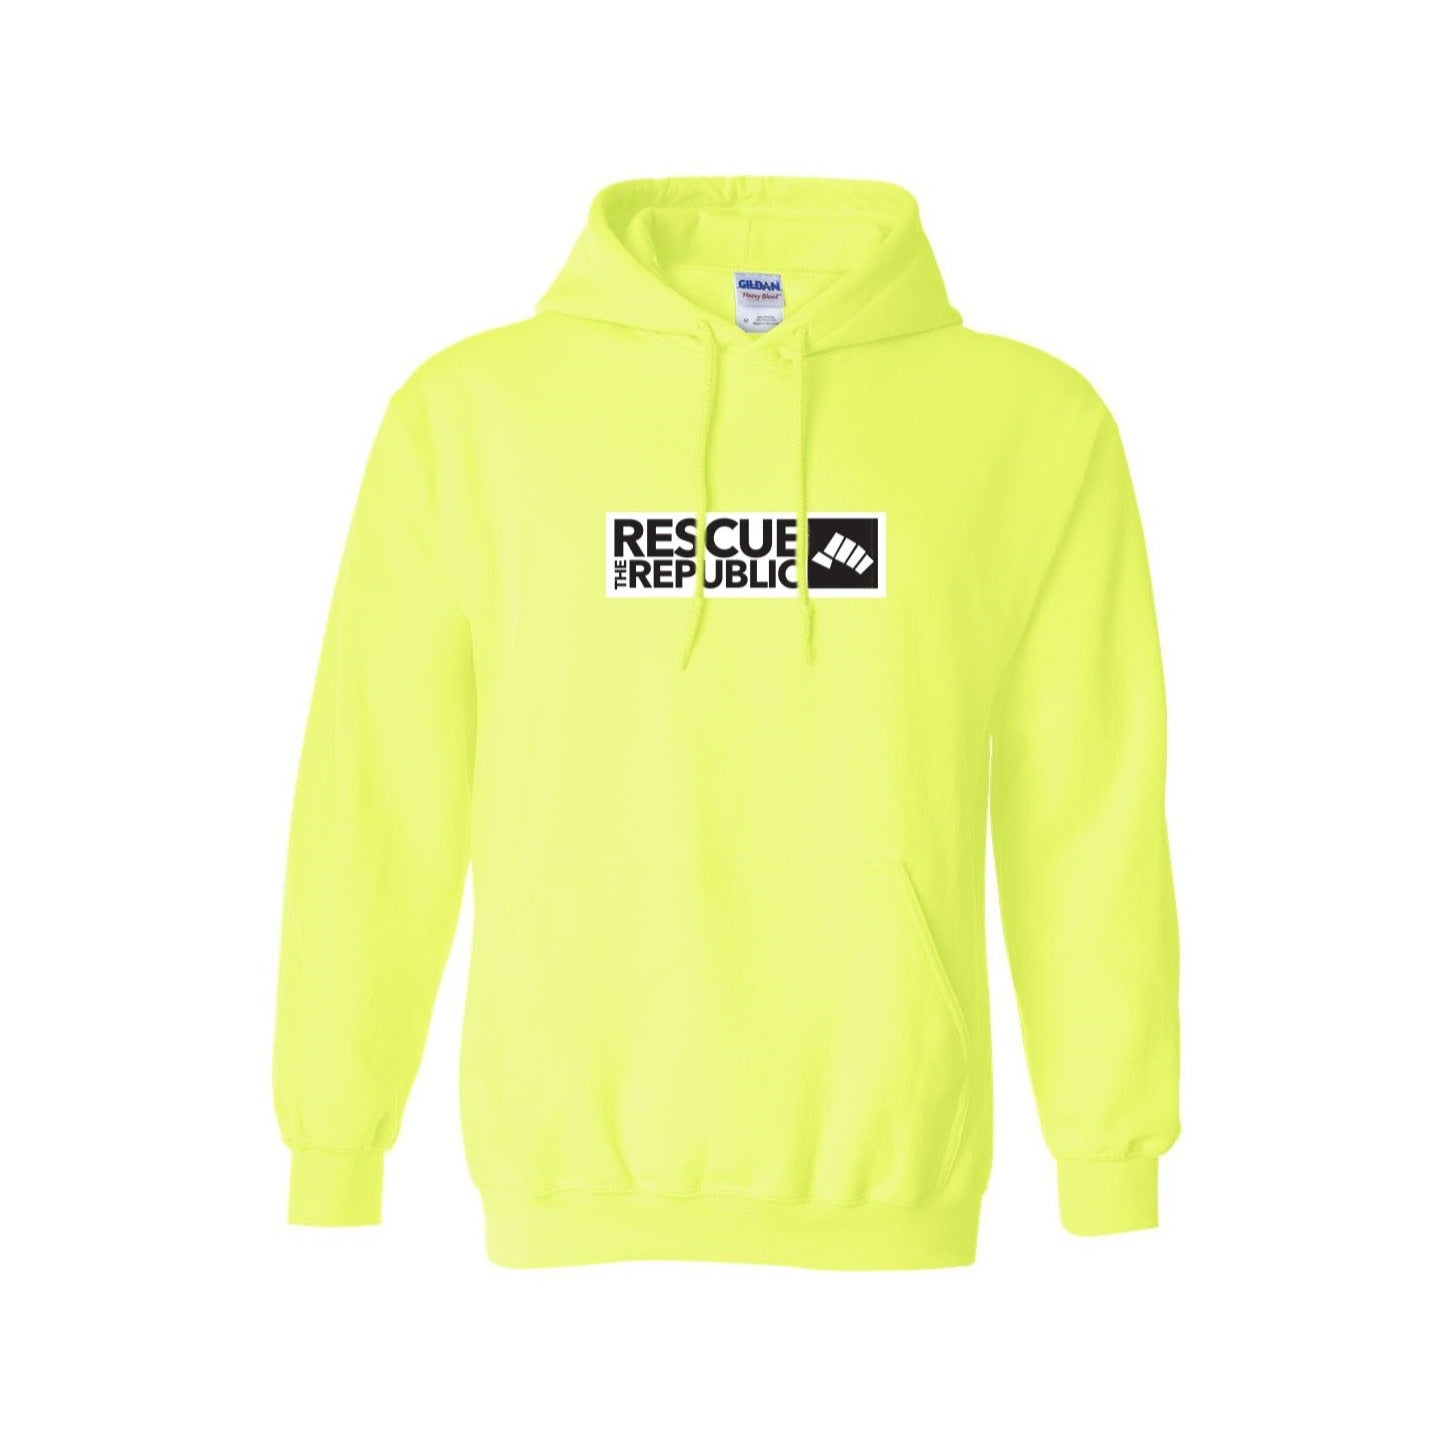 Rescue The Republic Hoodie Sweatshirt